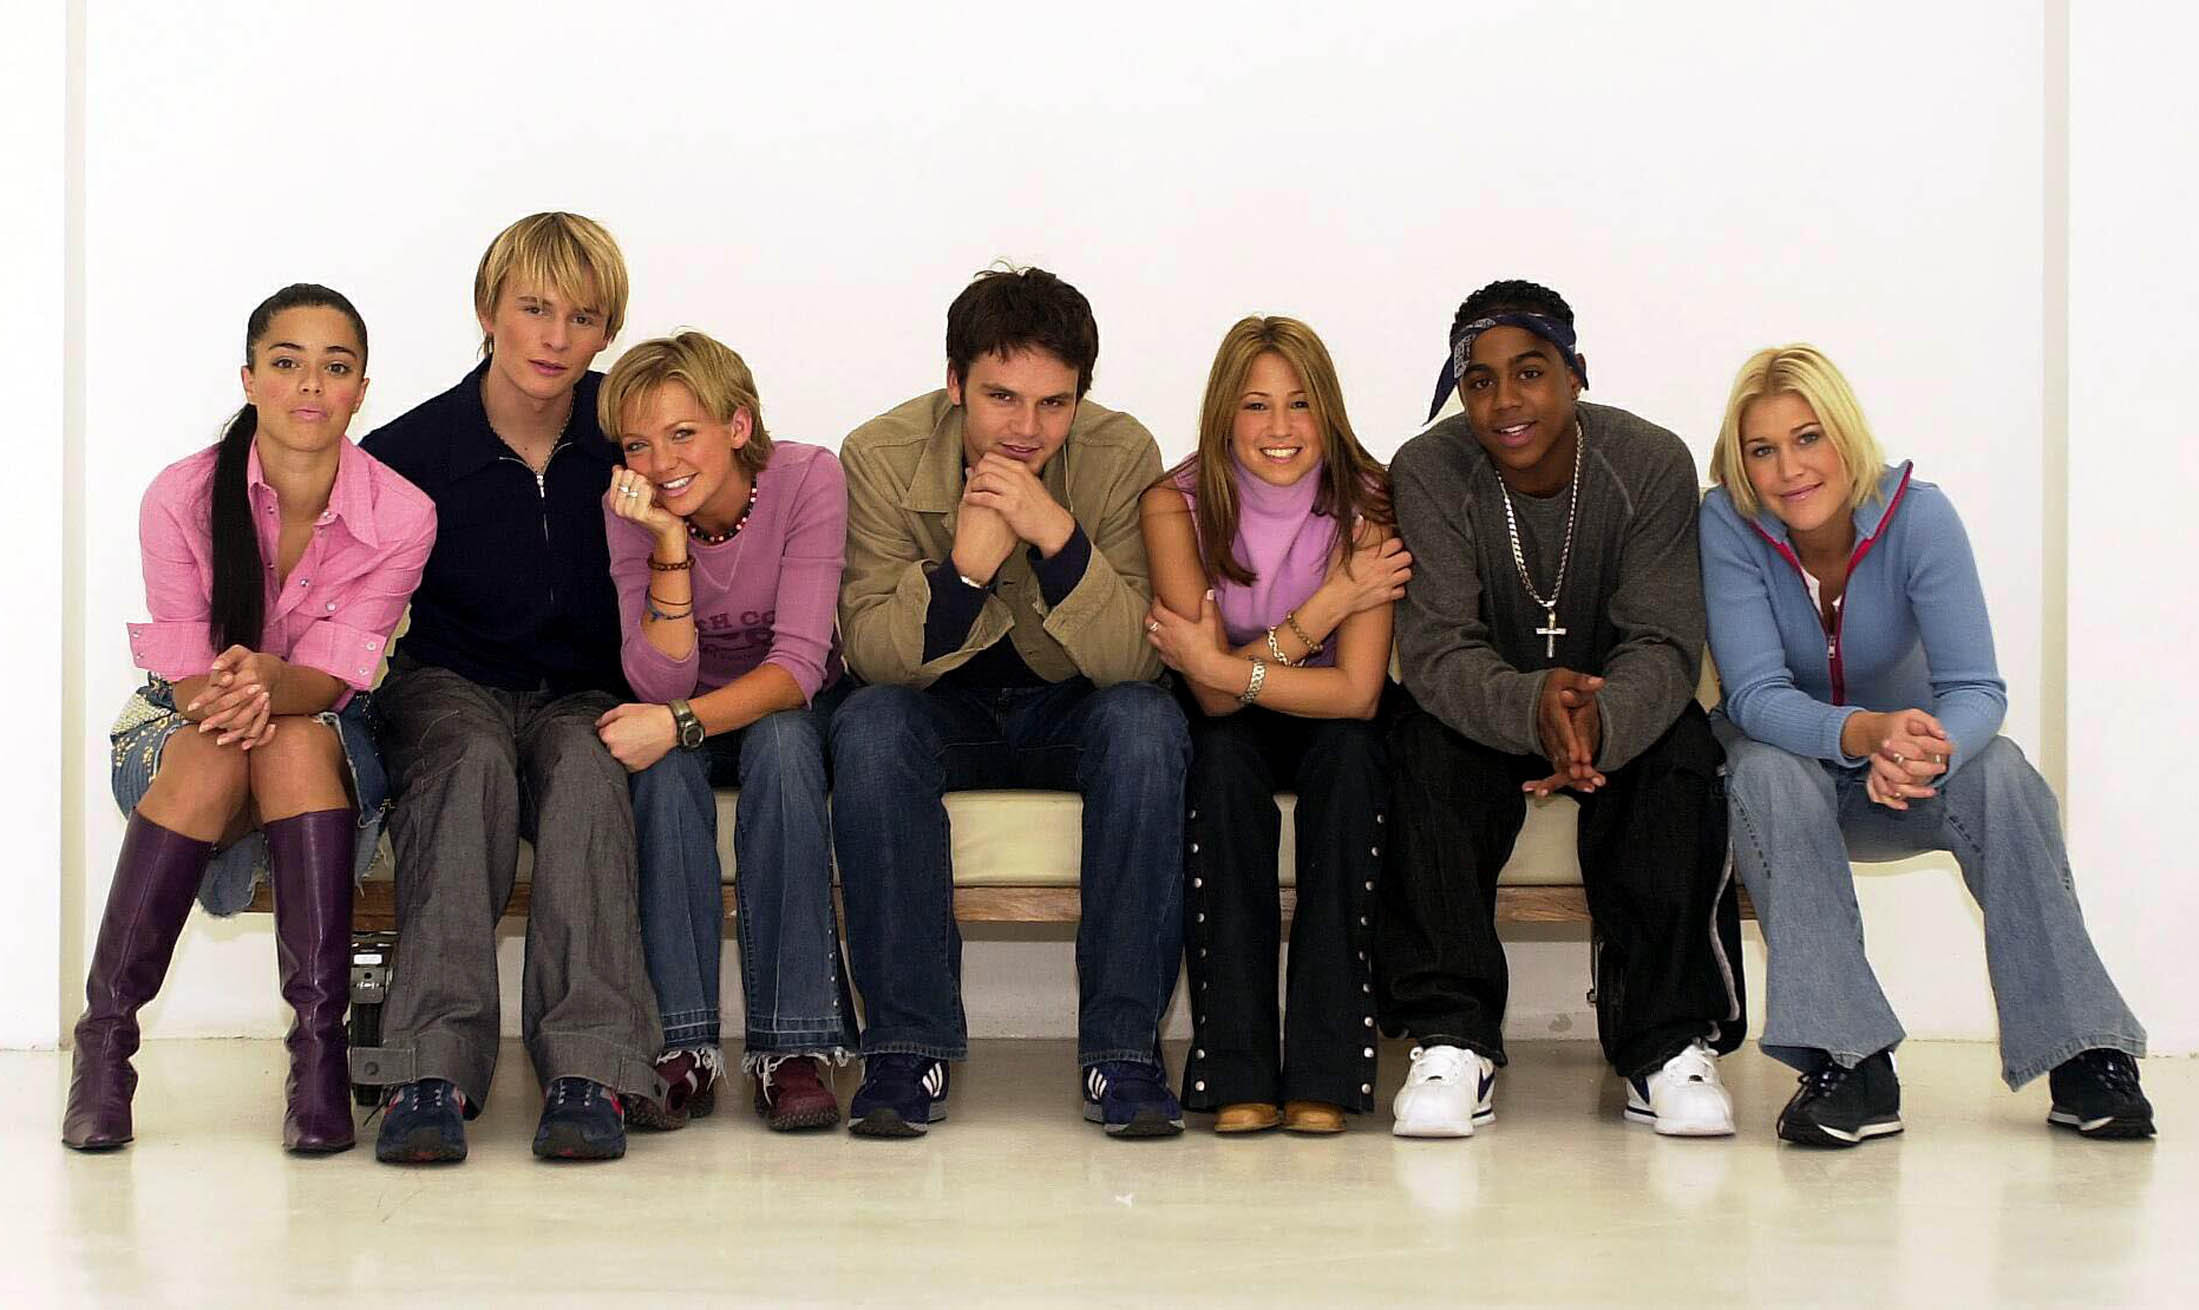 Pop group S Club 7 (Toby Melville/PA)